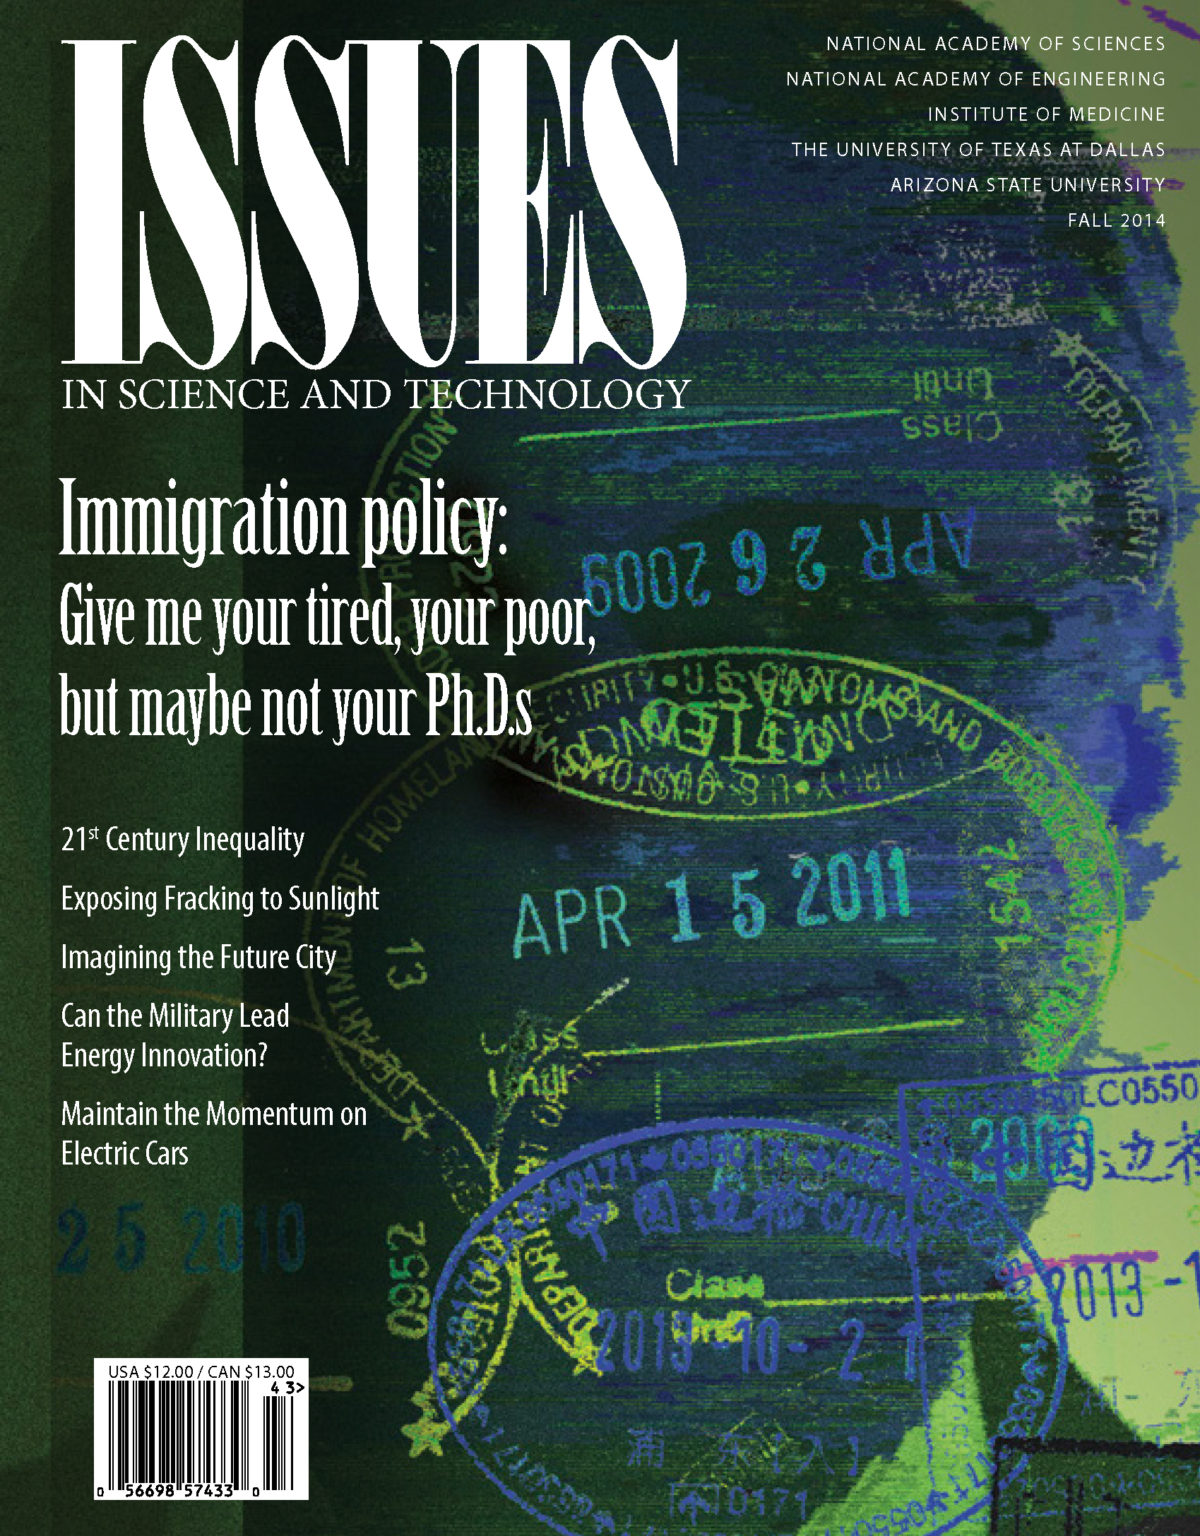 Issues Fall 2014 Immigration Policy Front Cover with Dated stamps on it